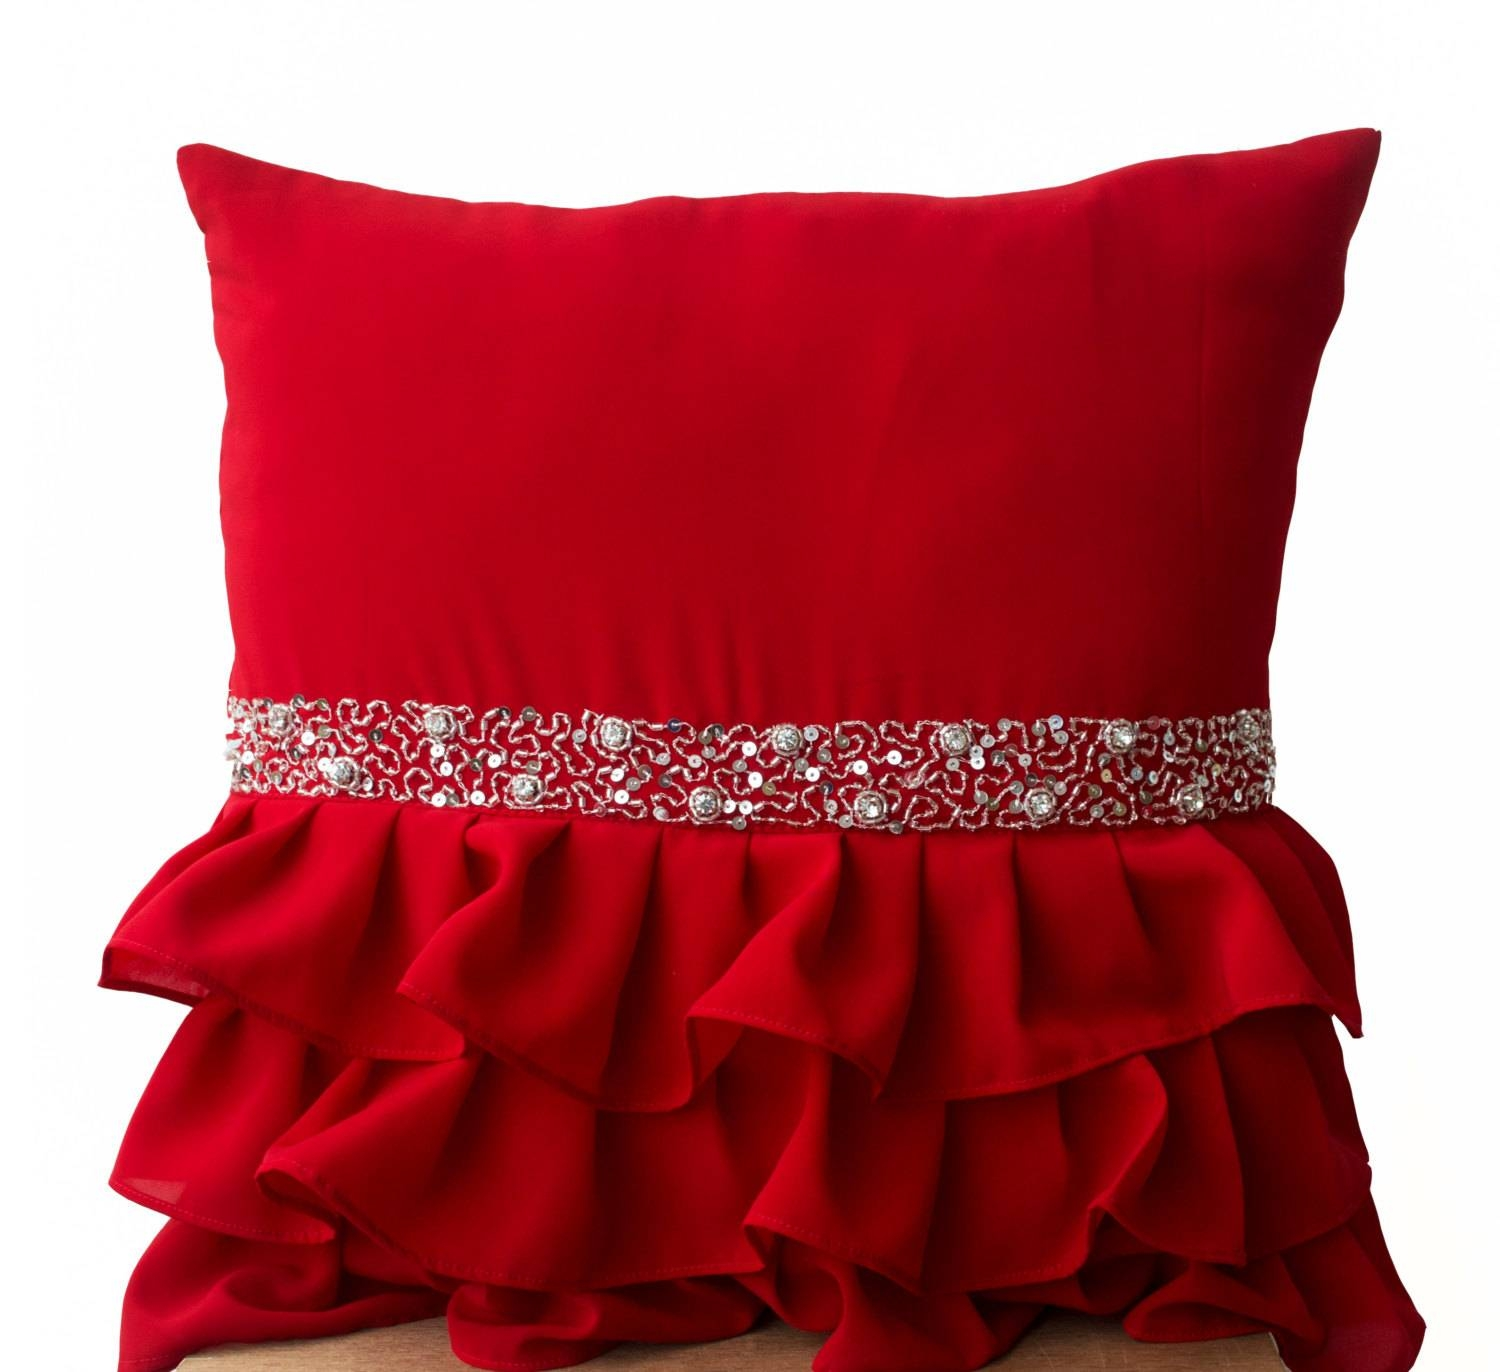 Inspirations: Beautiful Color Red Throw Pillows With Awsome Intended For Oversized Sofa Pillows (View 14 of 30)